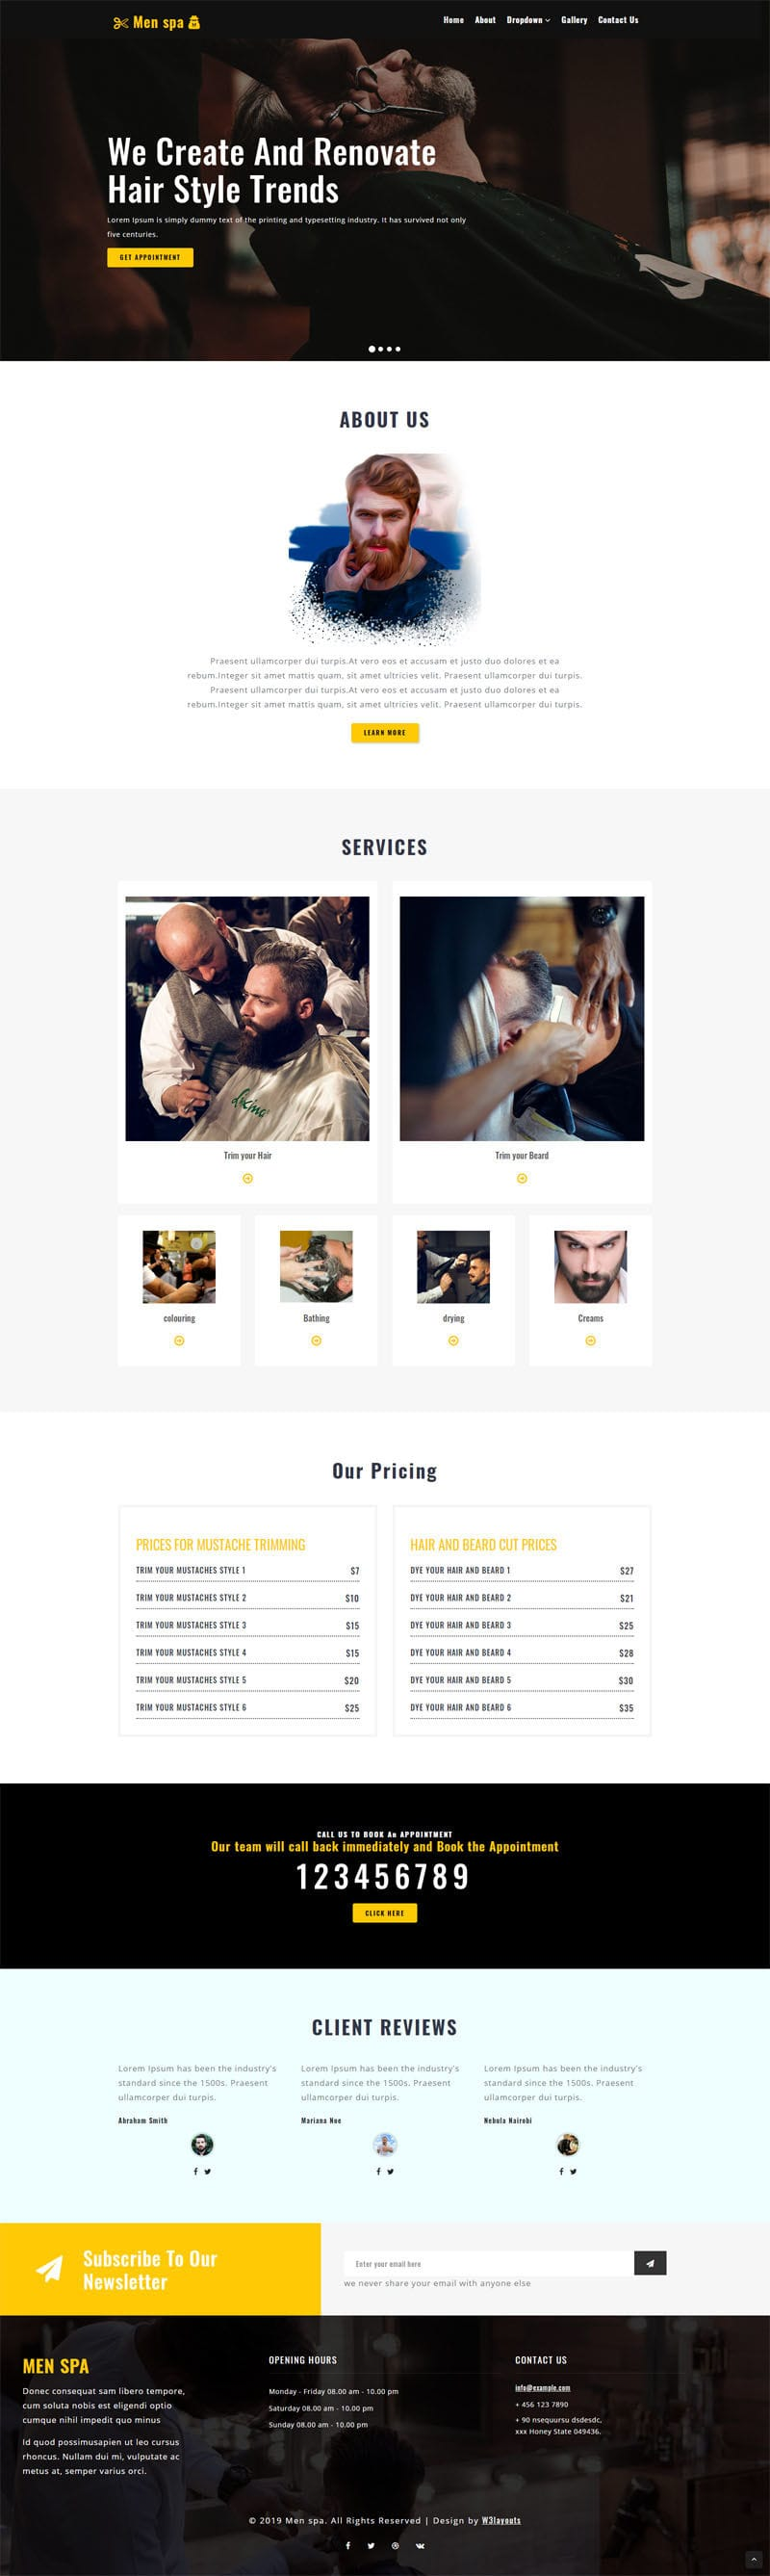 men spa is a website template built for salons, spas and beauty parlours.